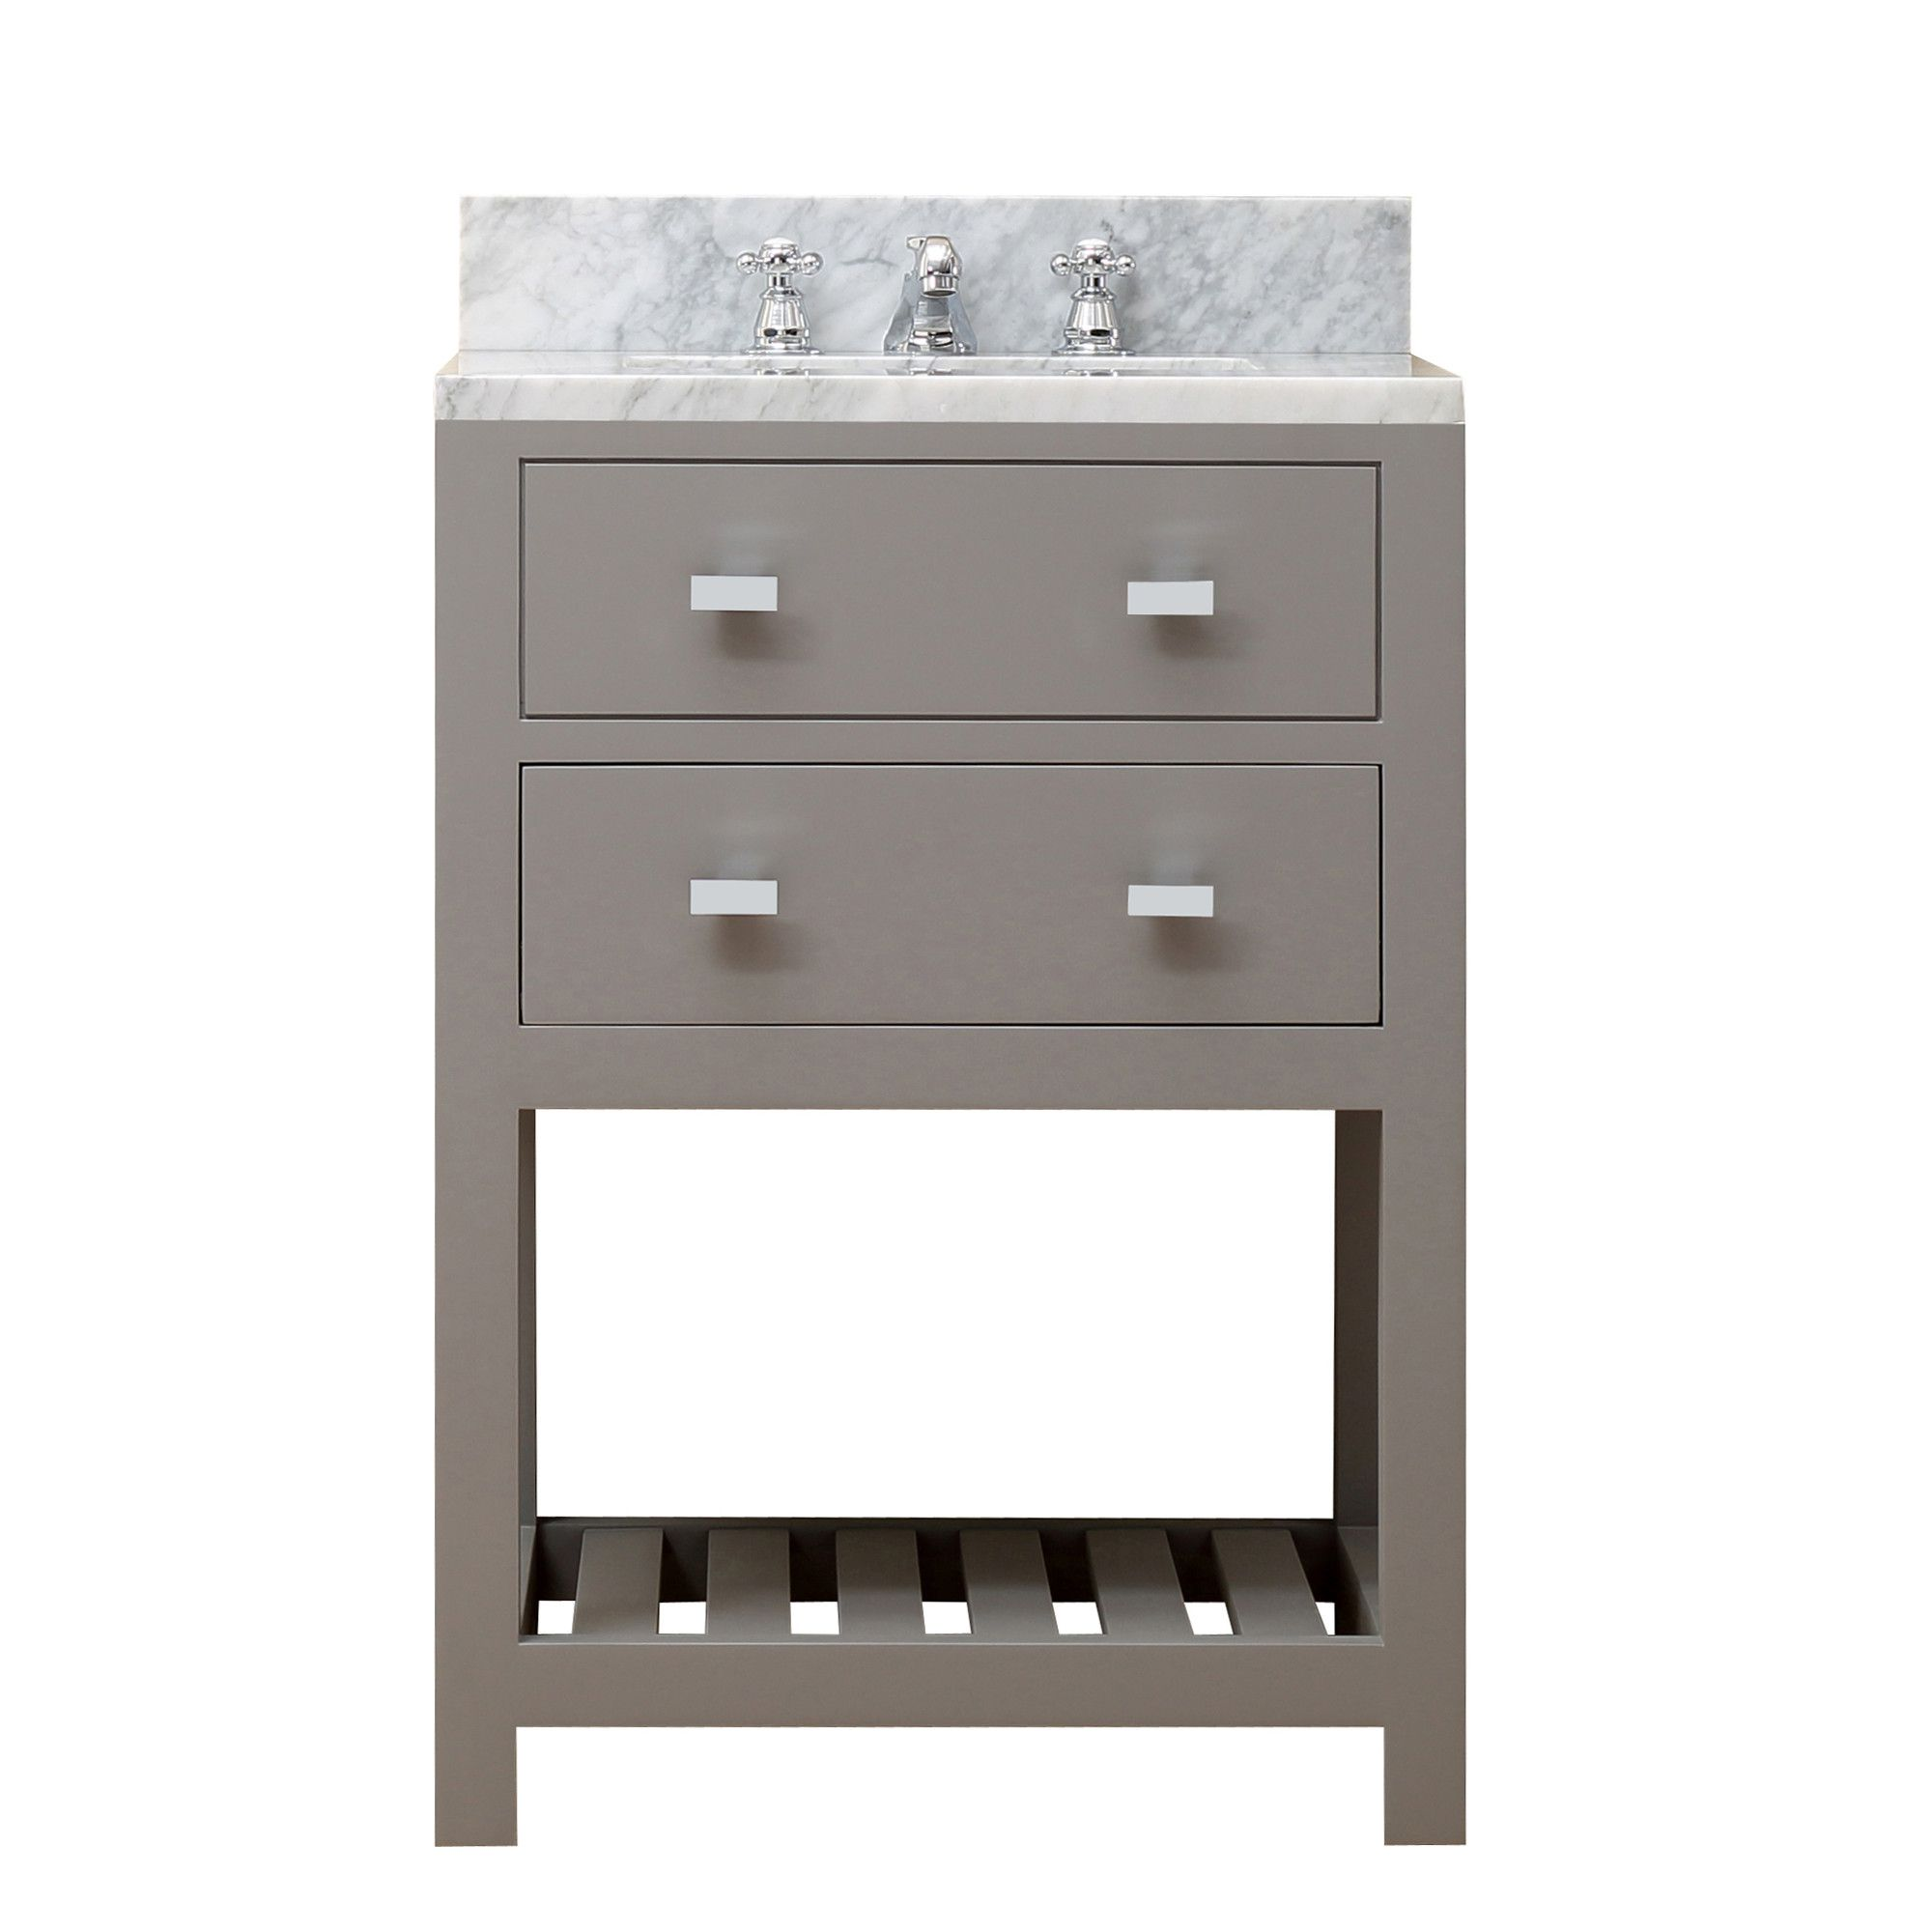 "dCOR design Creighton 24"" Single Sink Bathroom Vanity Set"